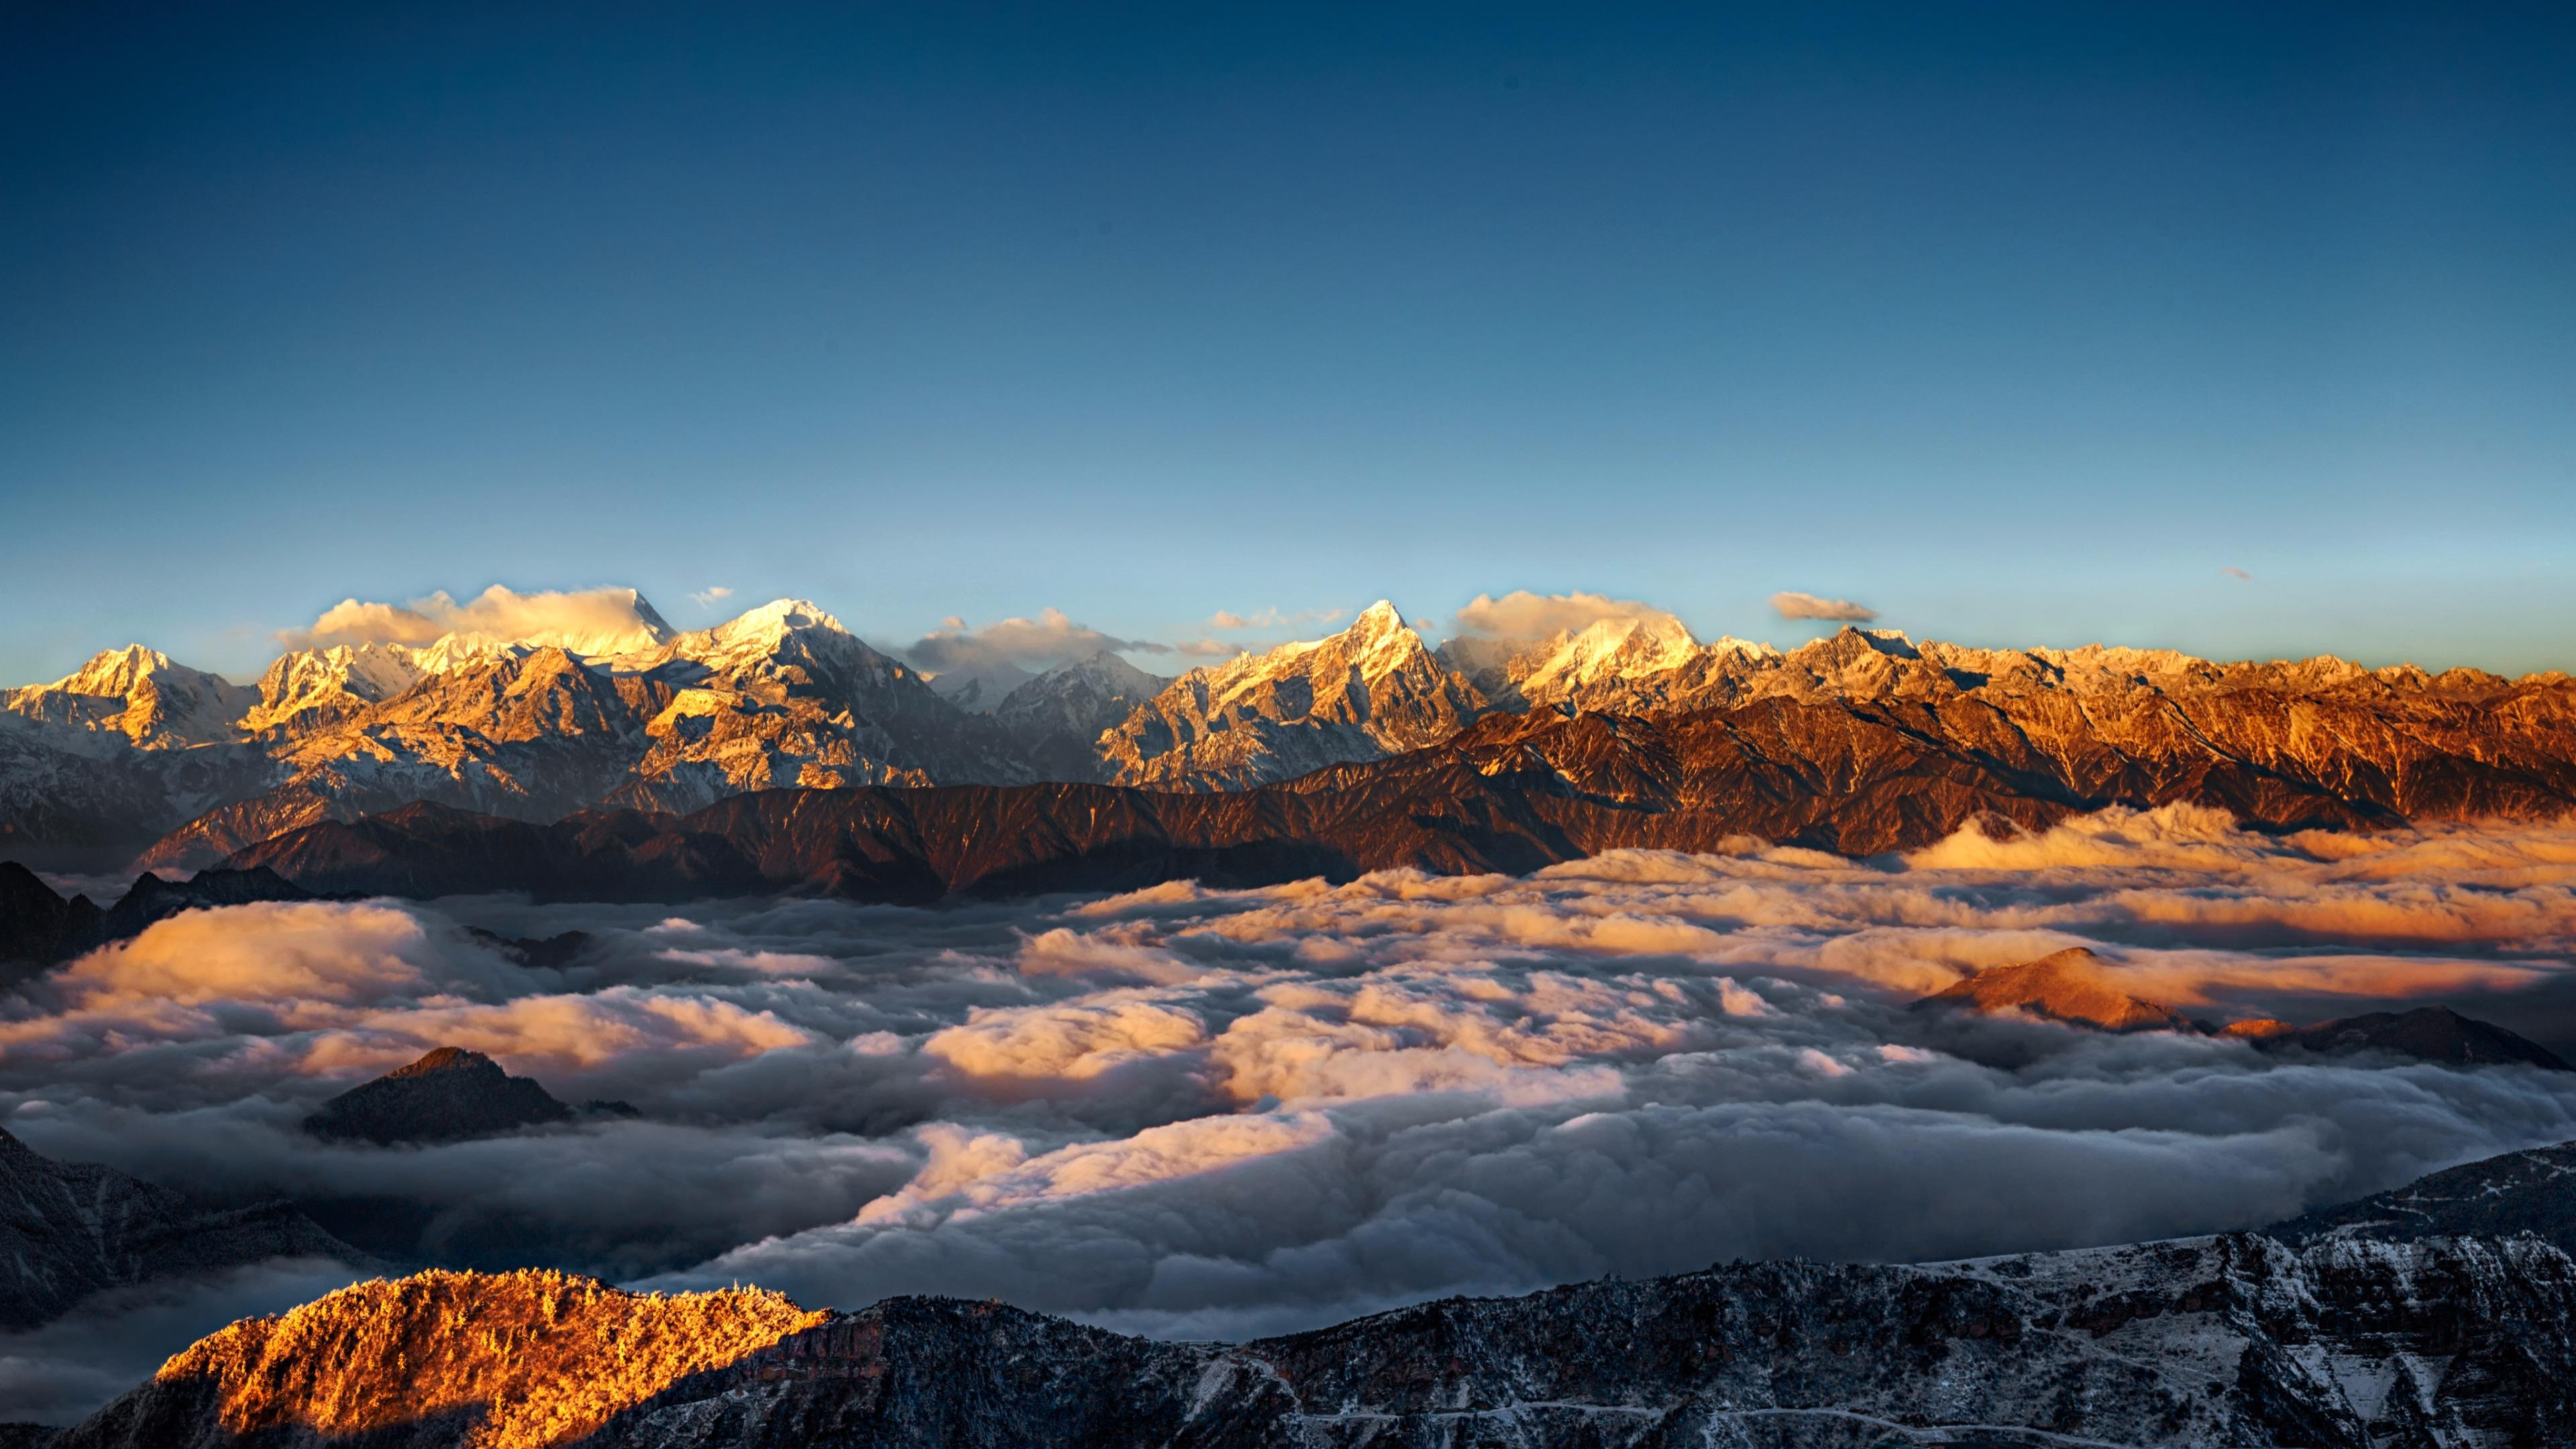 Mount Gongga in the sea of clouds wallpaper